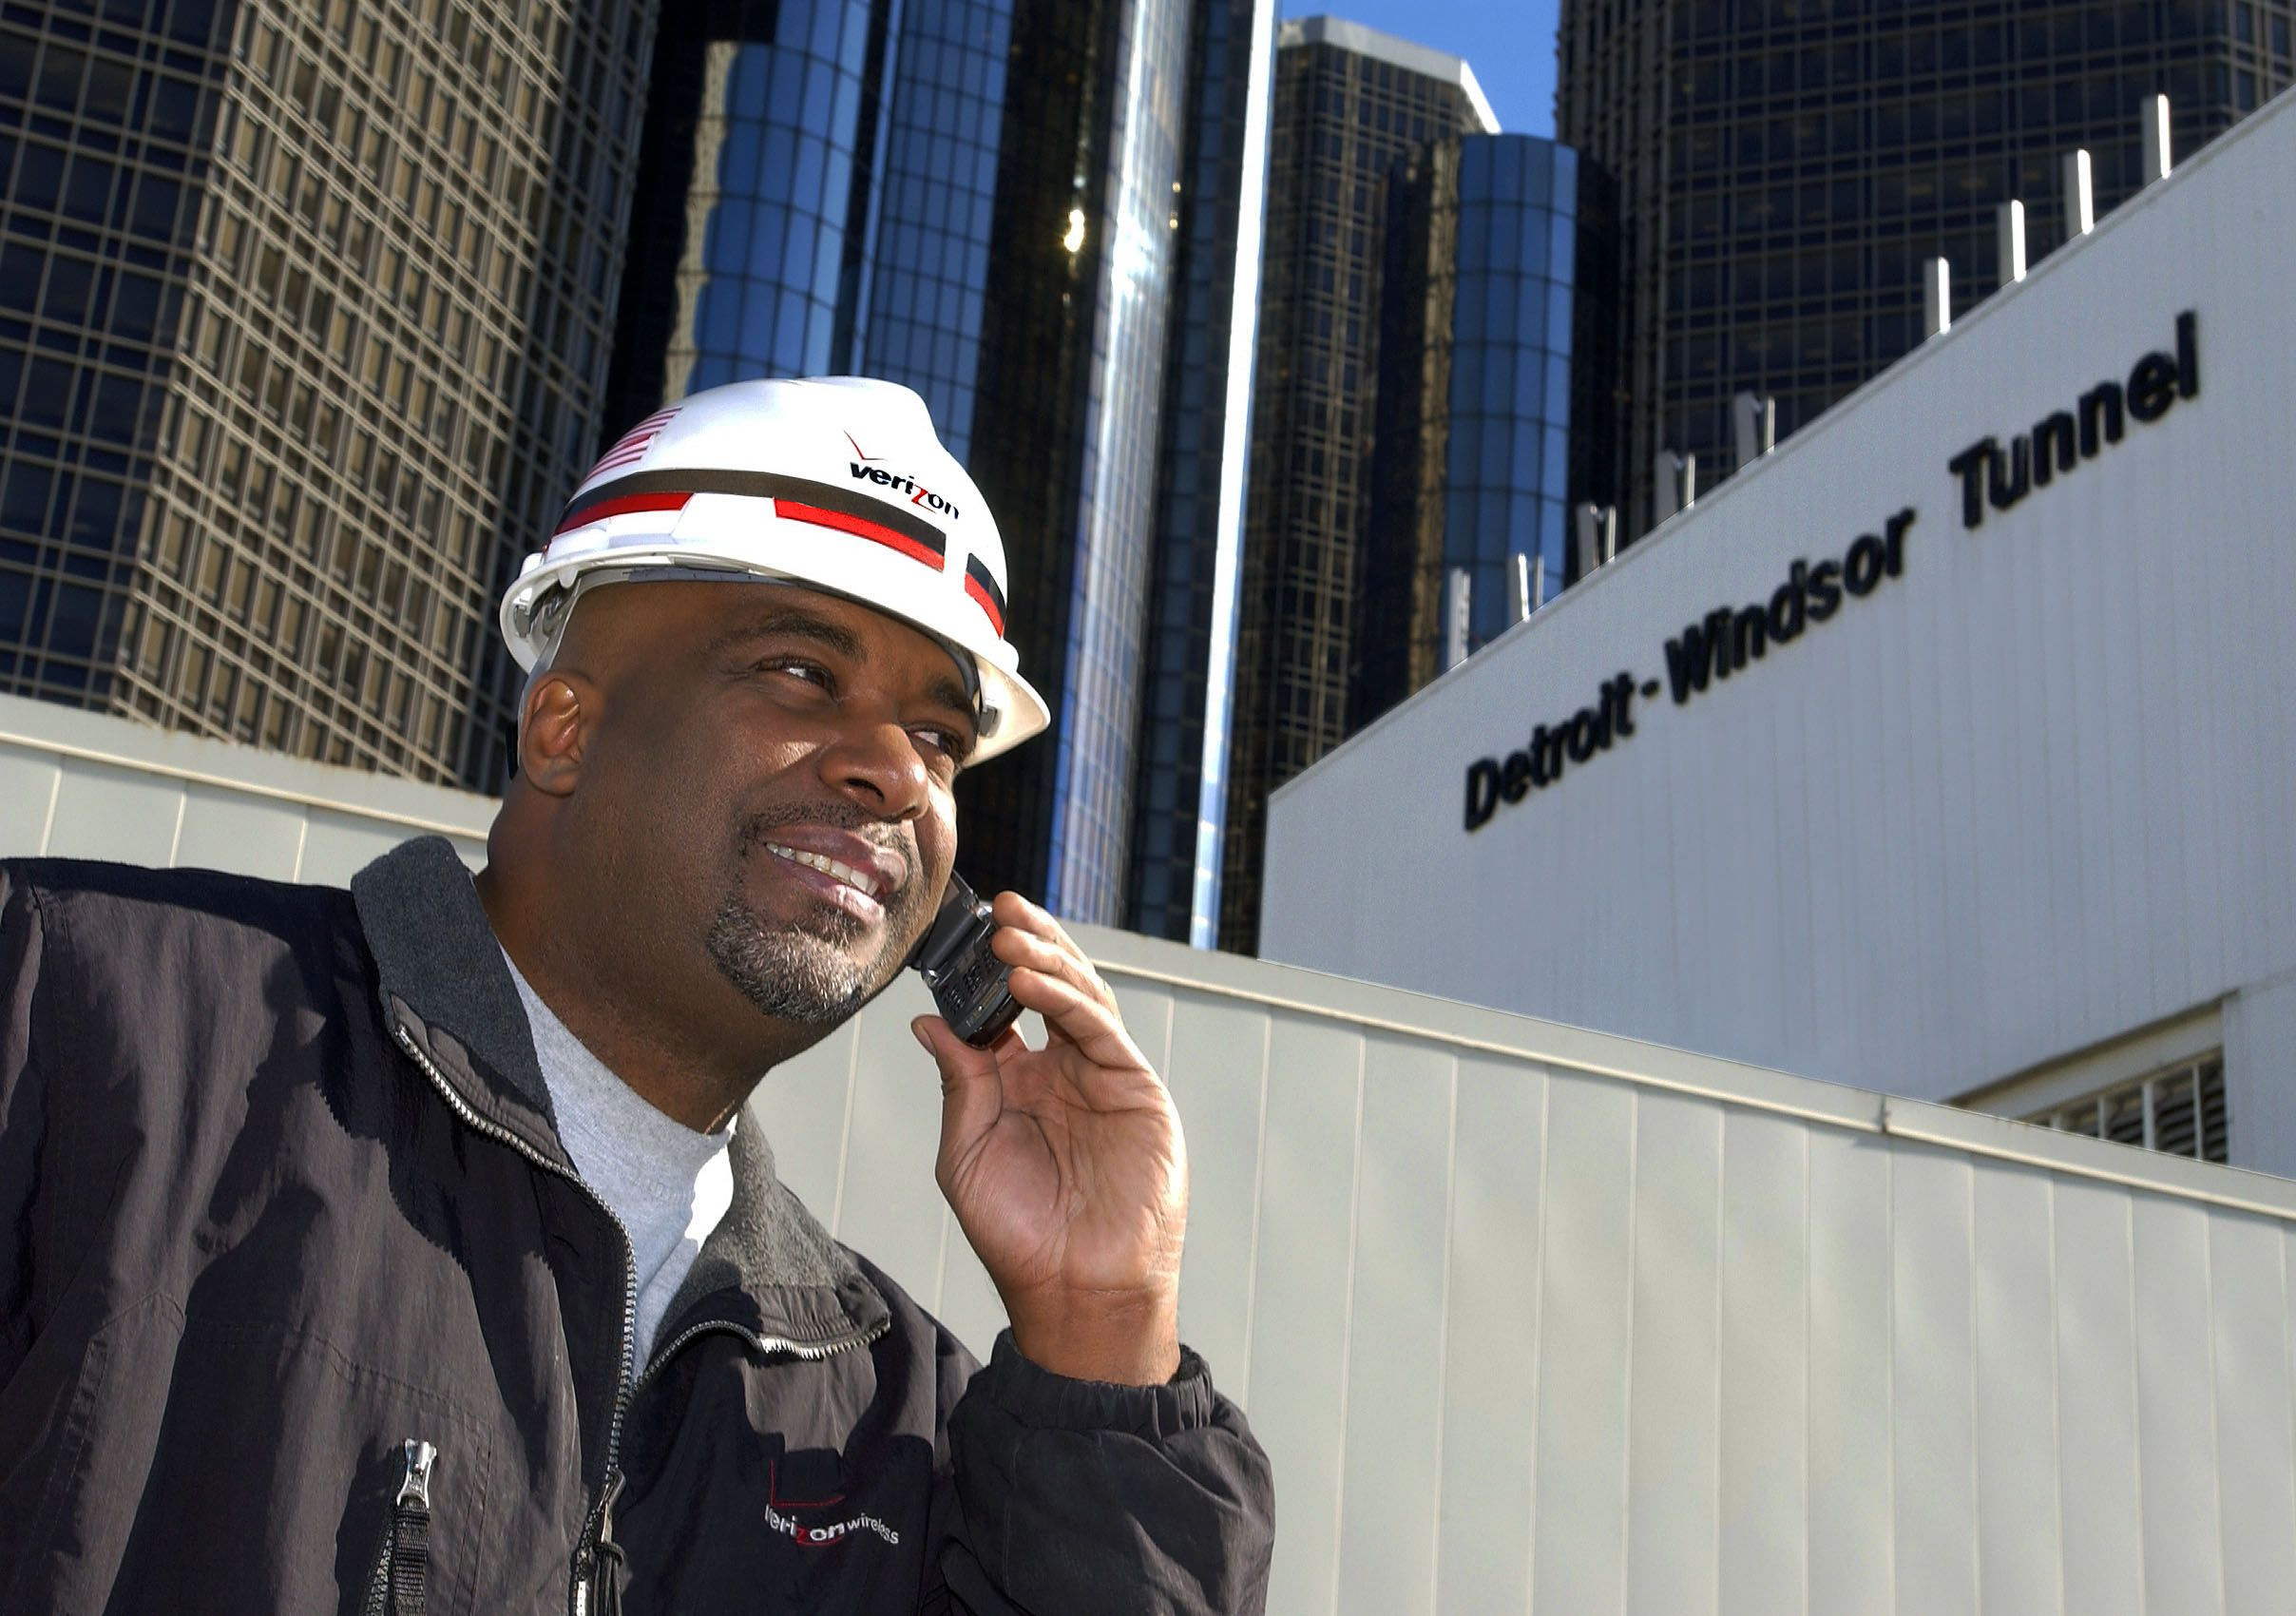 Verizon Worker